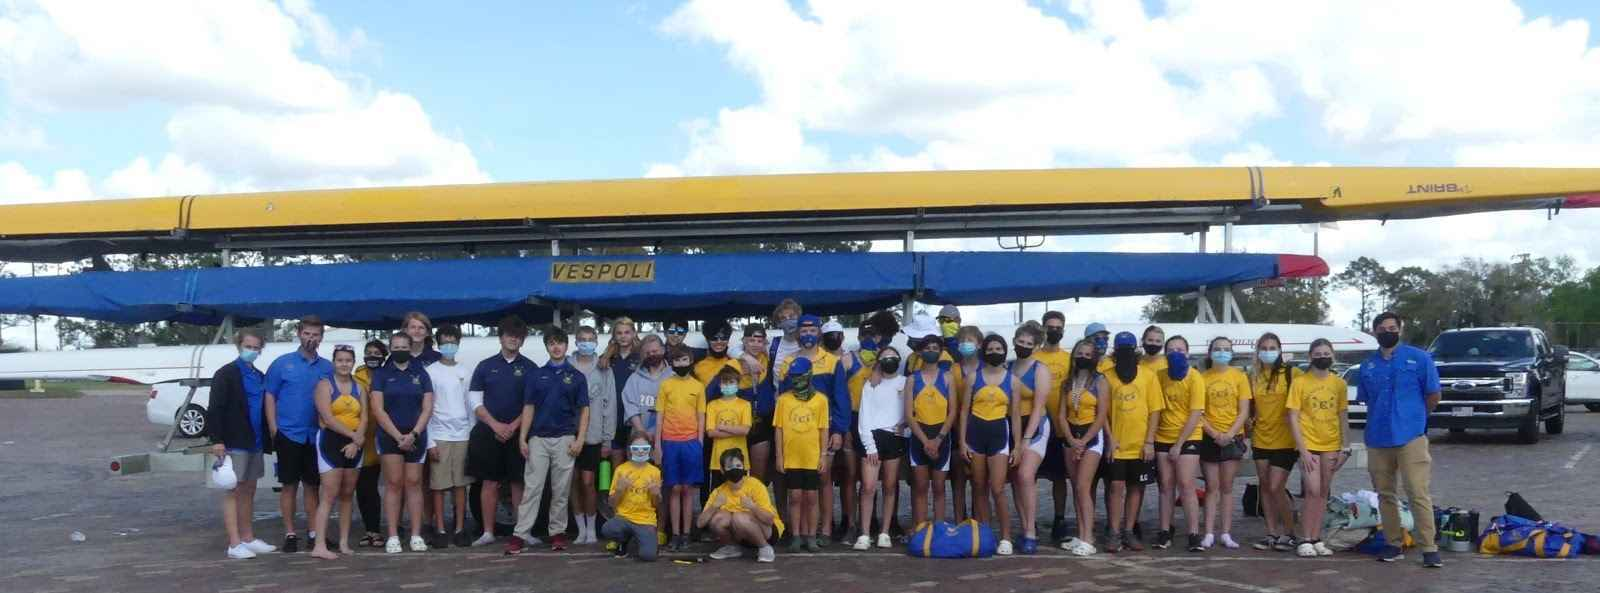 Become a Sponsor of Lyman Rowing image